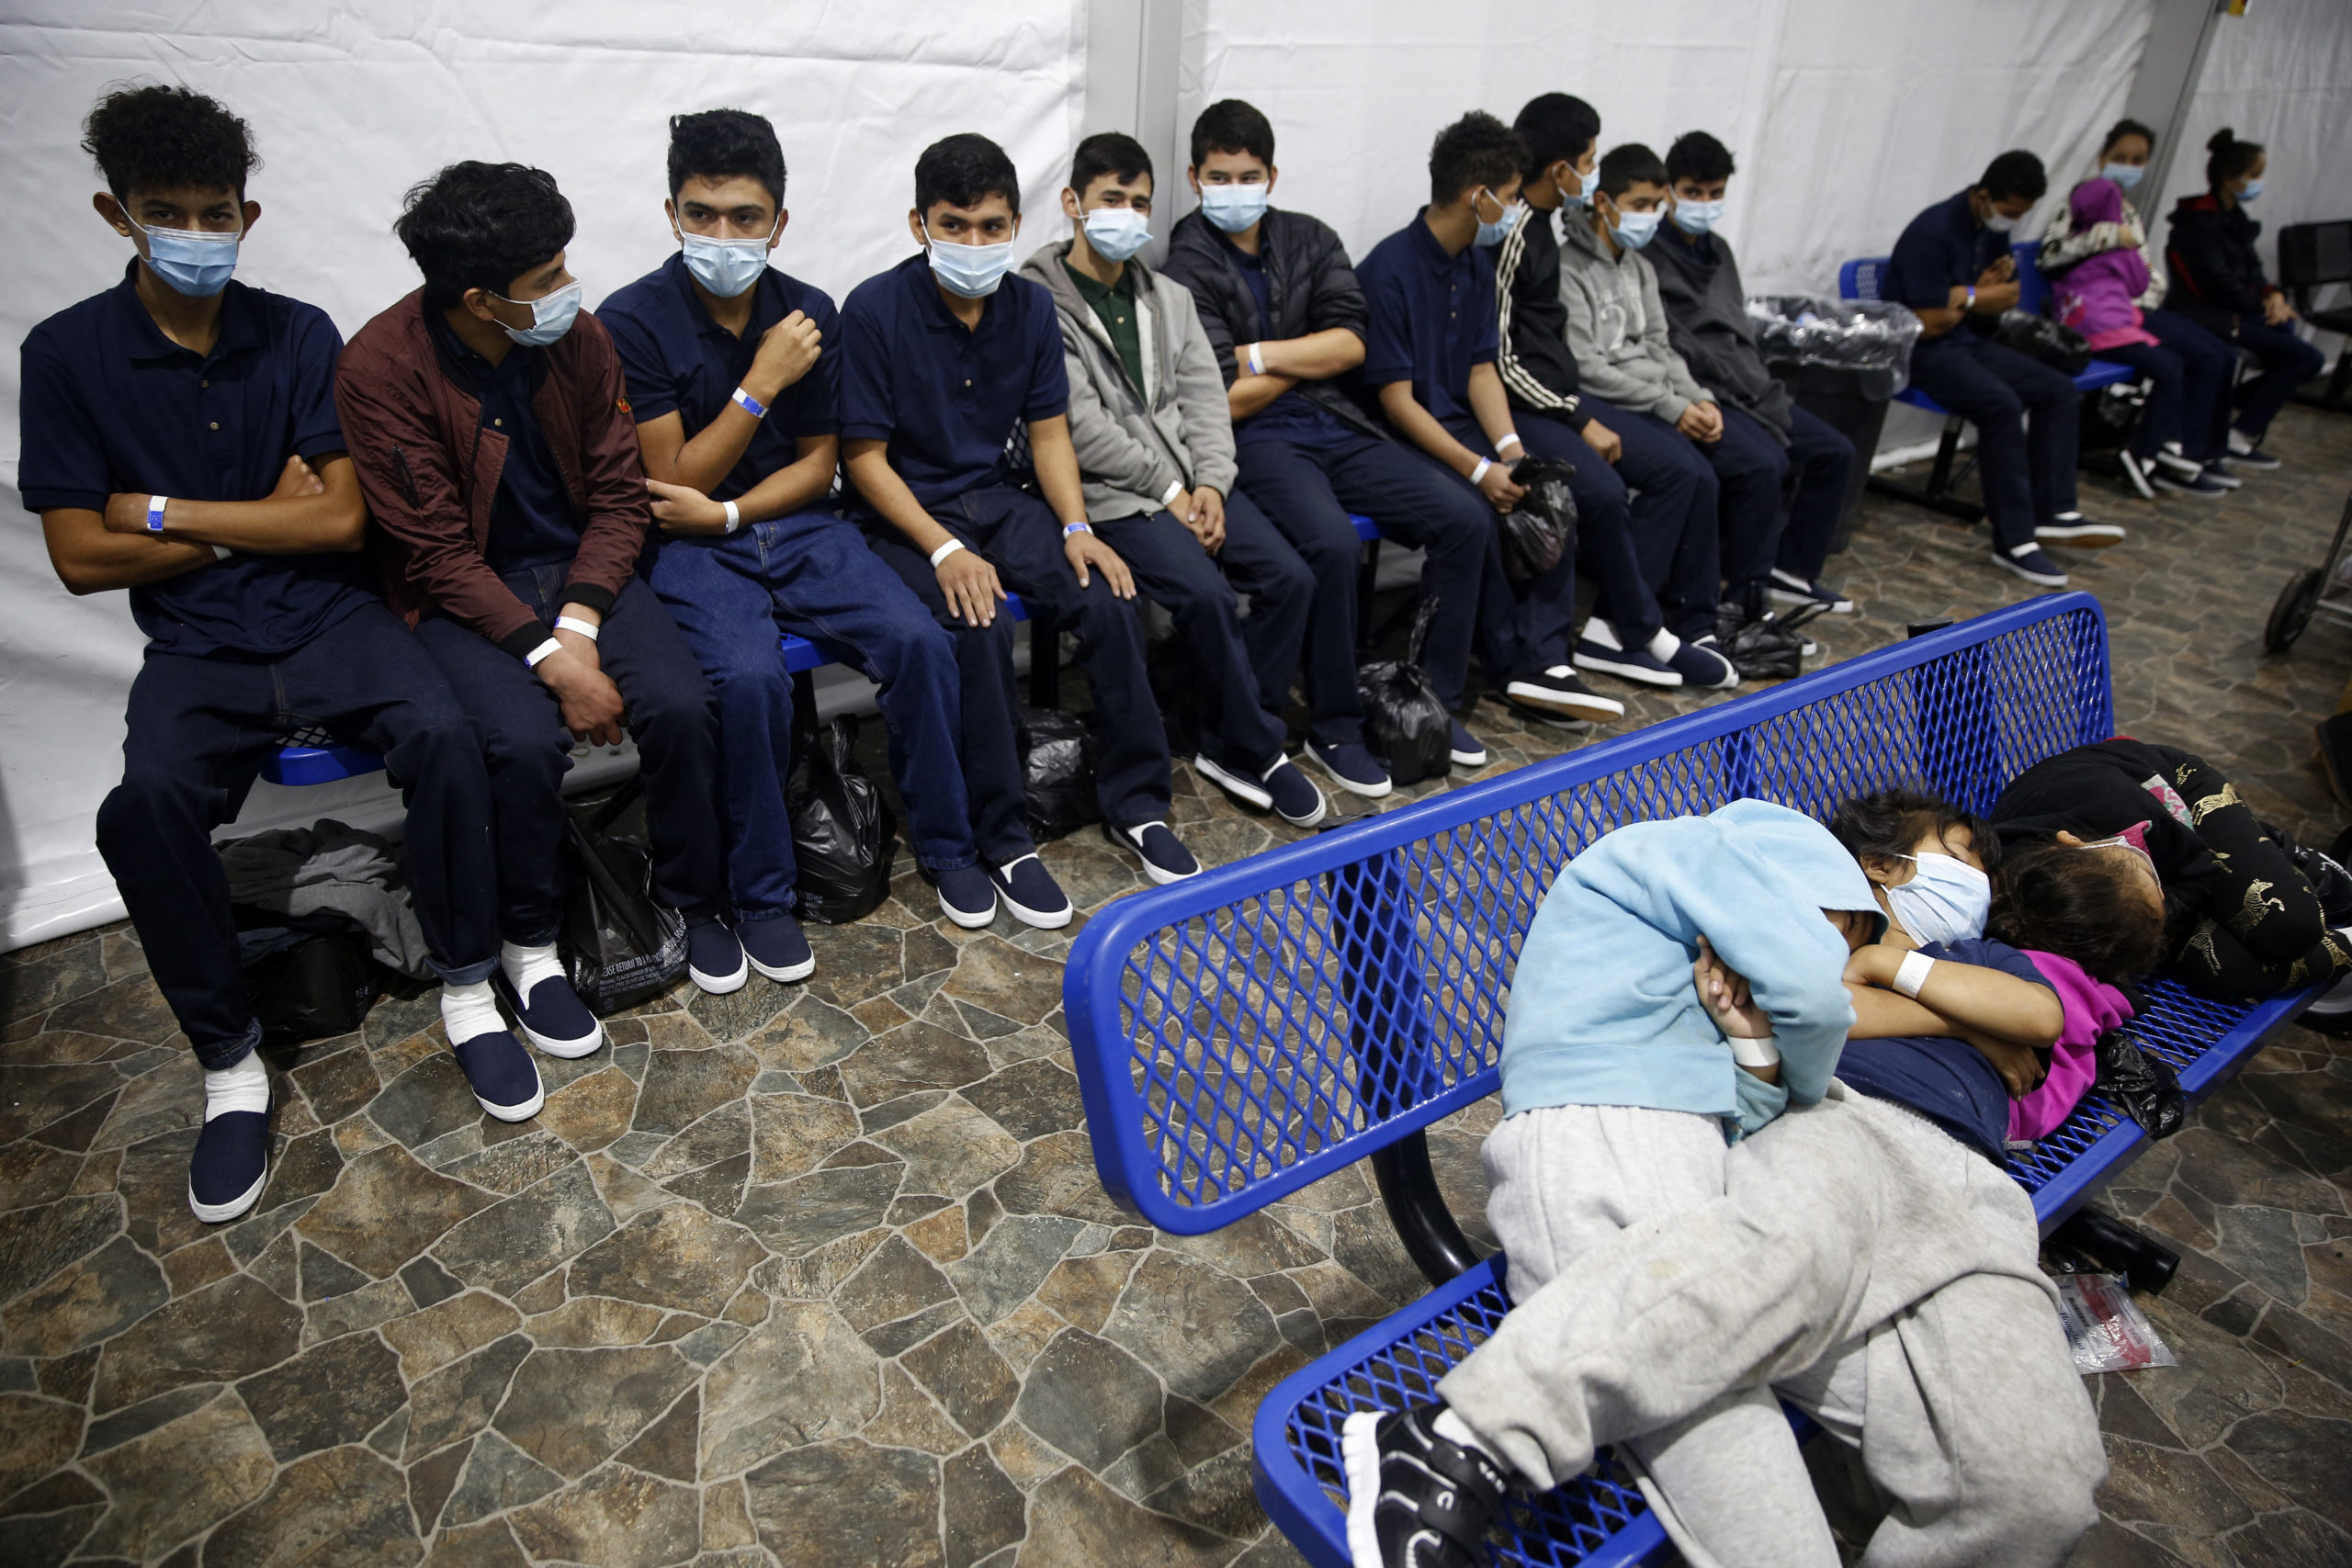 Young migrants wait for processing inside the Donna Department of Homeland Security holding facility. (Photo by DARIO LOPEZ-MILLS/POOL/AFP via Getty Images)